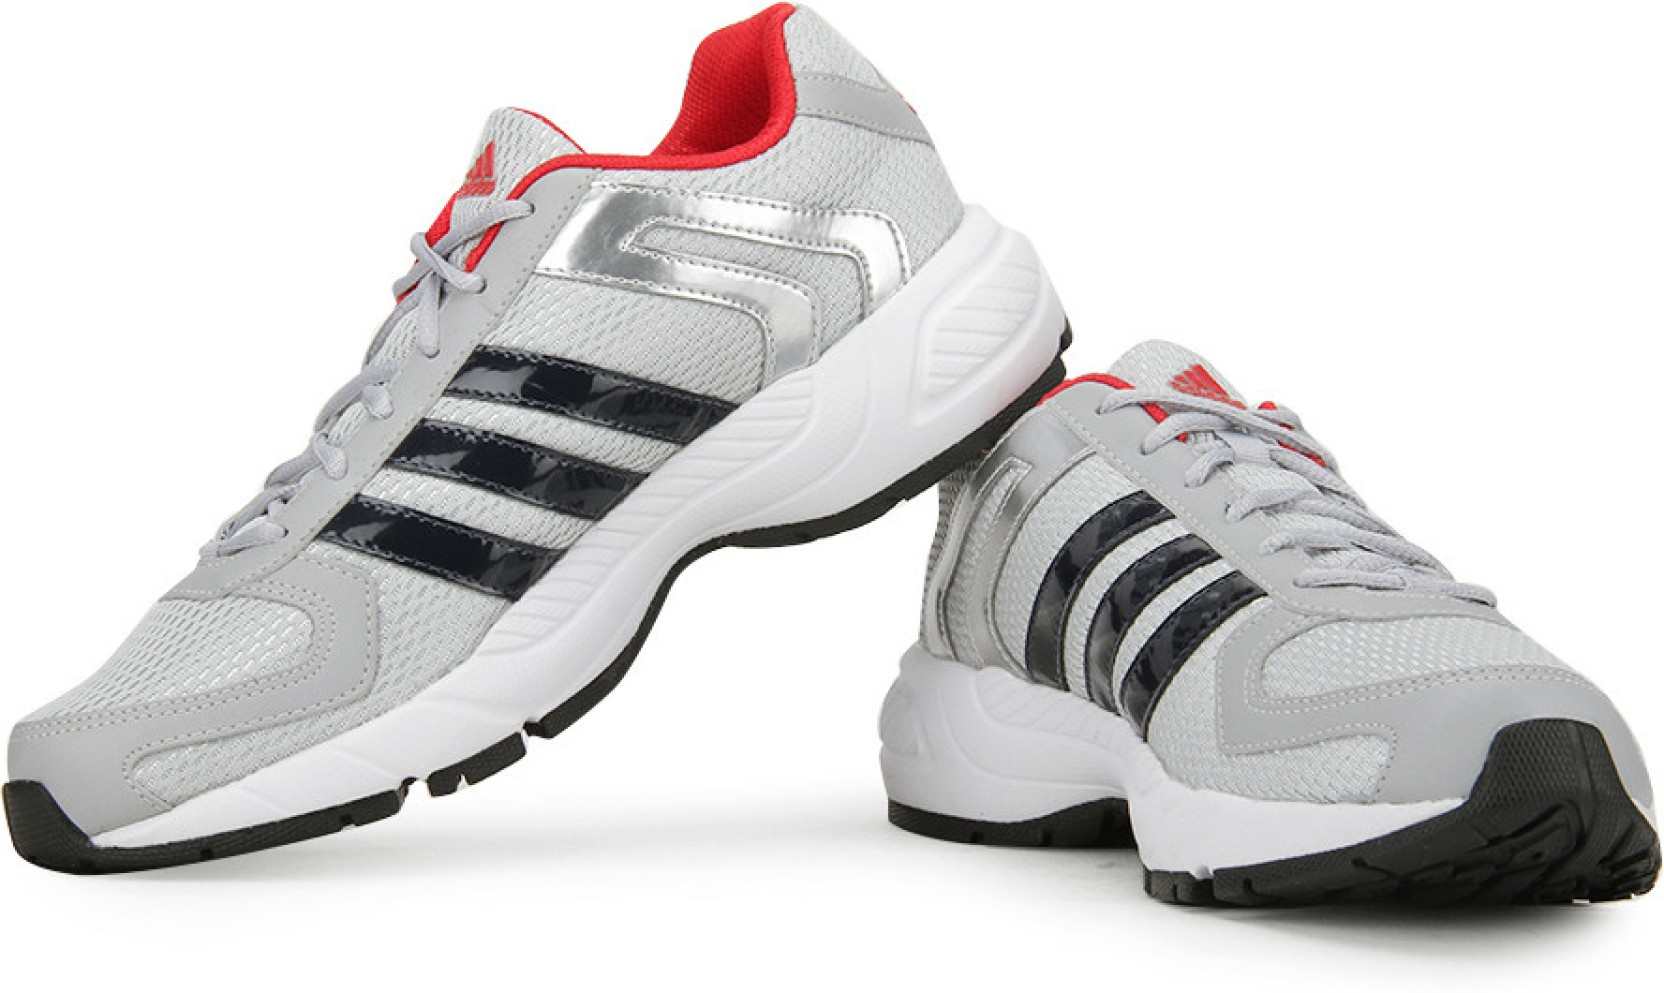 Adidas Running Shoes Online Uk